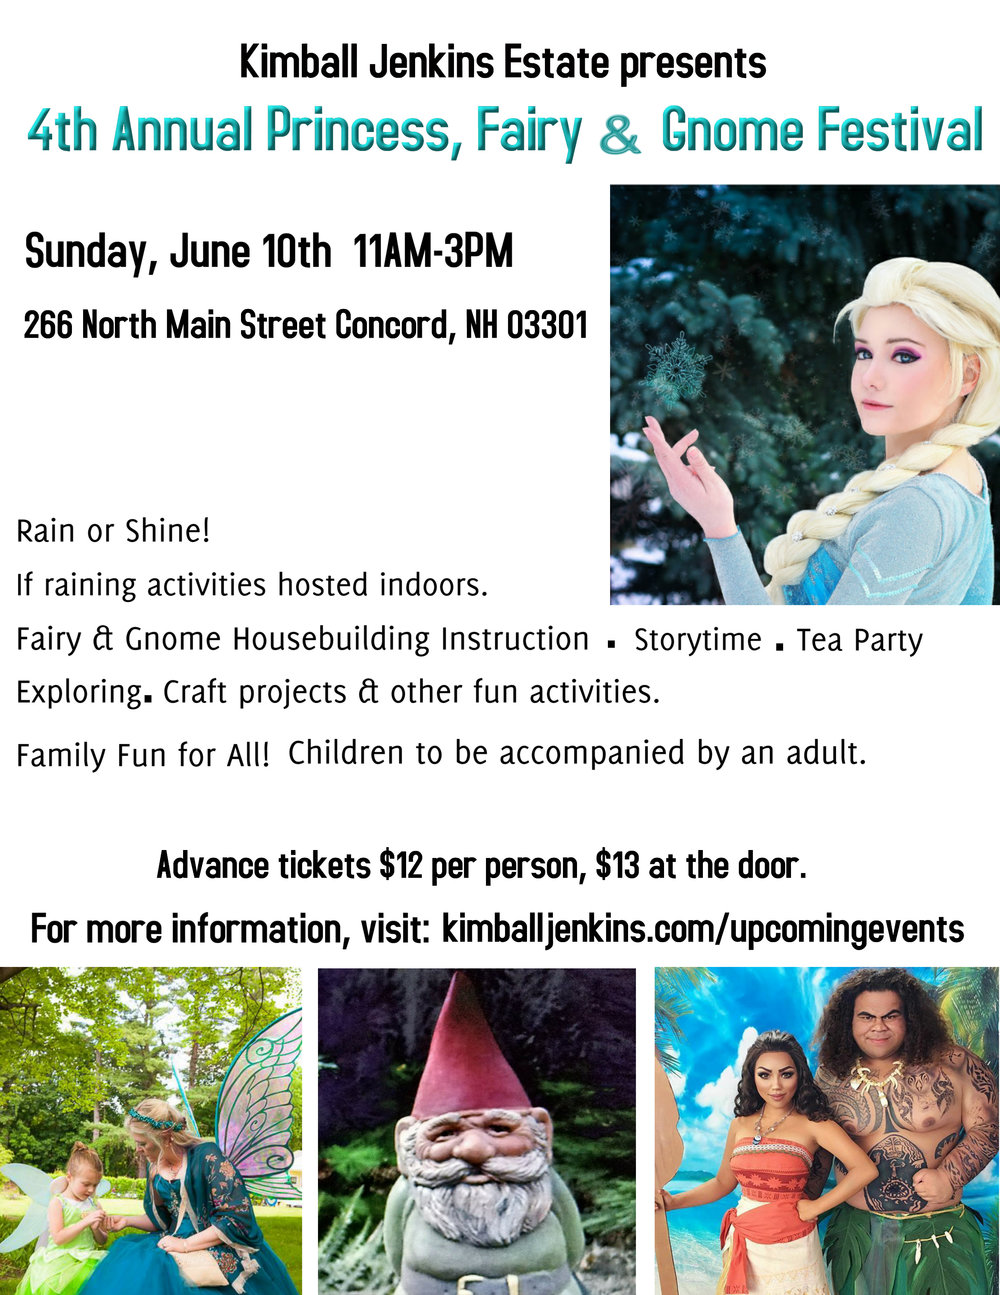 final princess fairy gnome festival flyer 2018.jpg